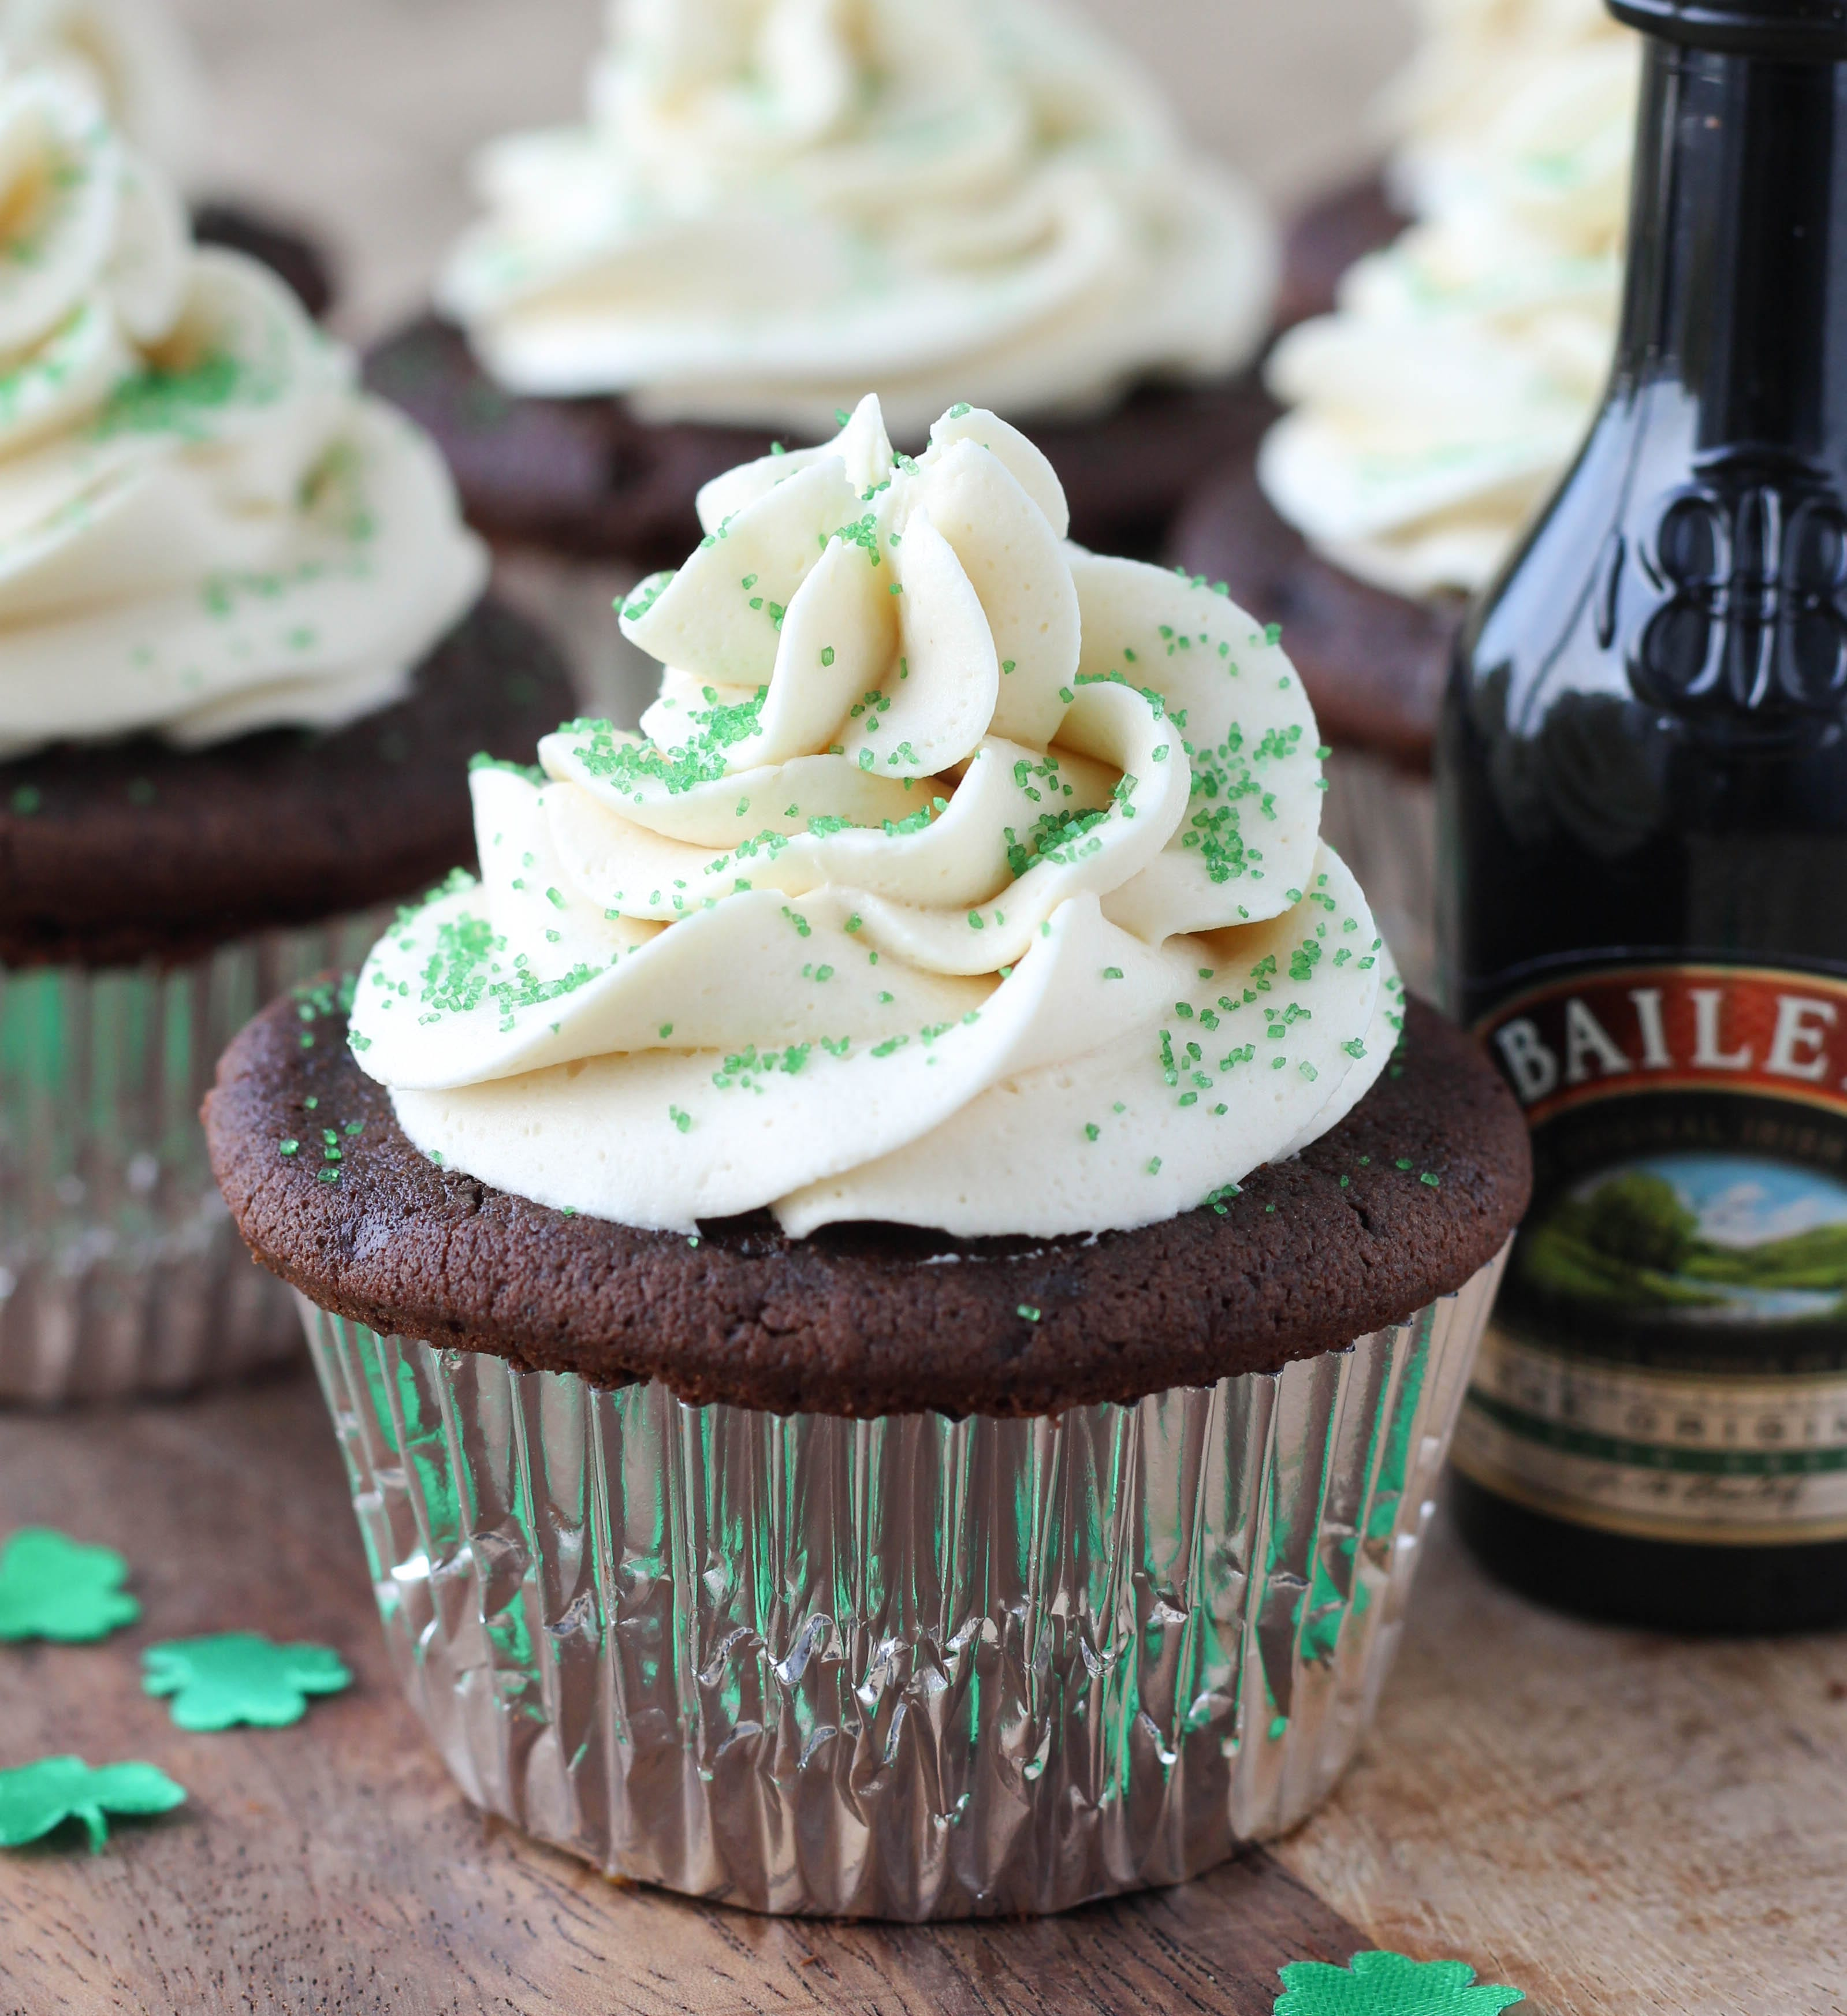 Guinness Chocolate Cupcakes with Bailey's Buttercream and Salted Caramel Filling